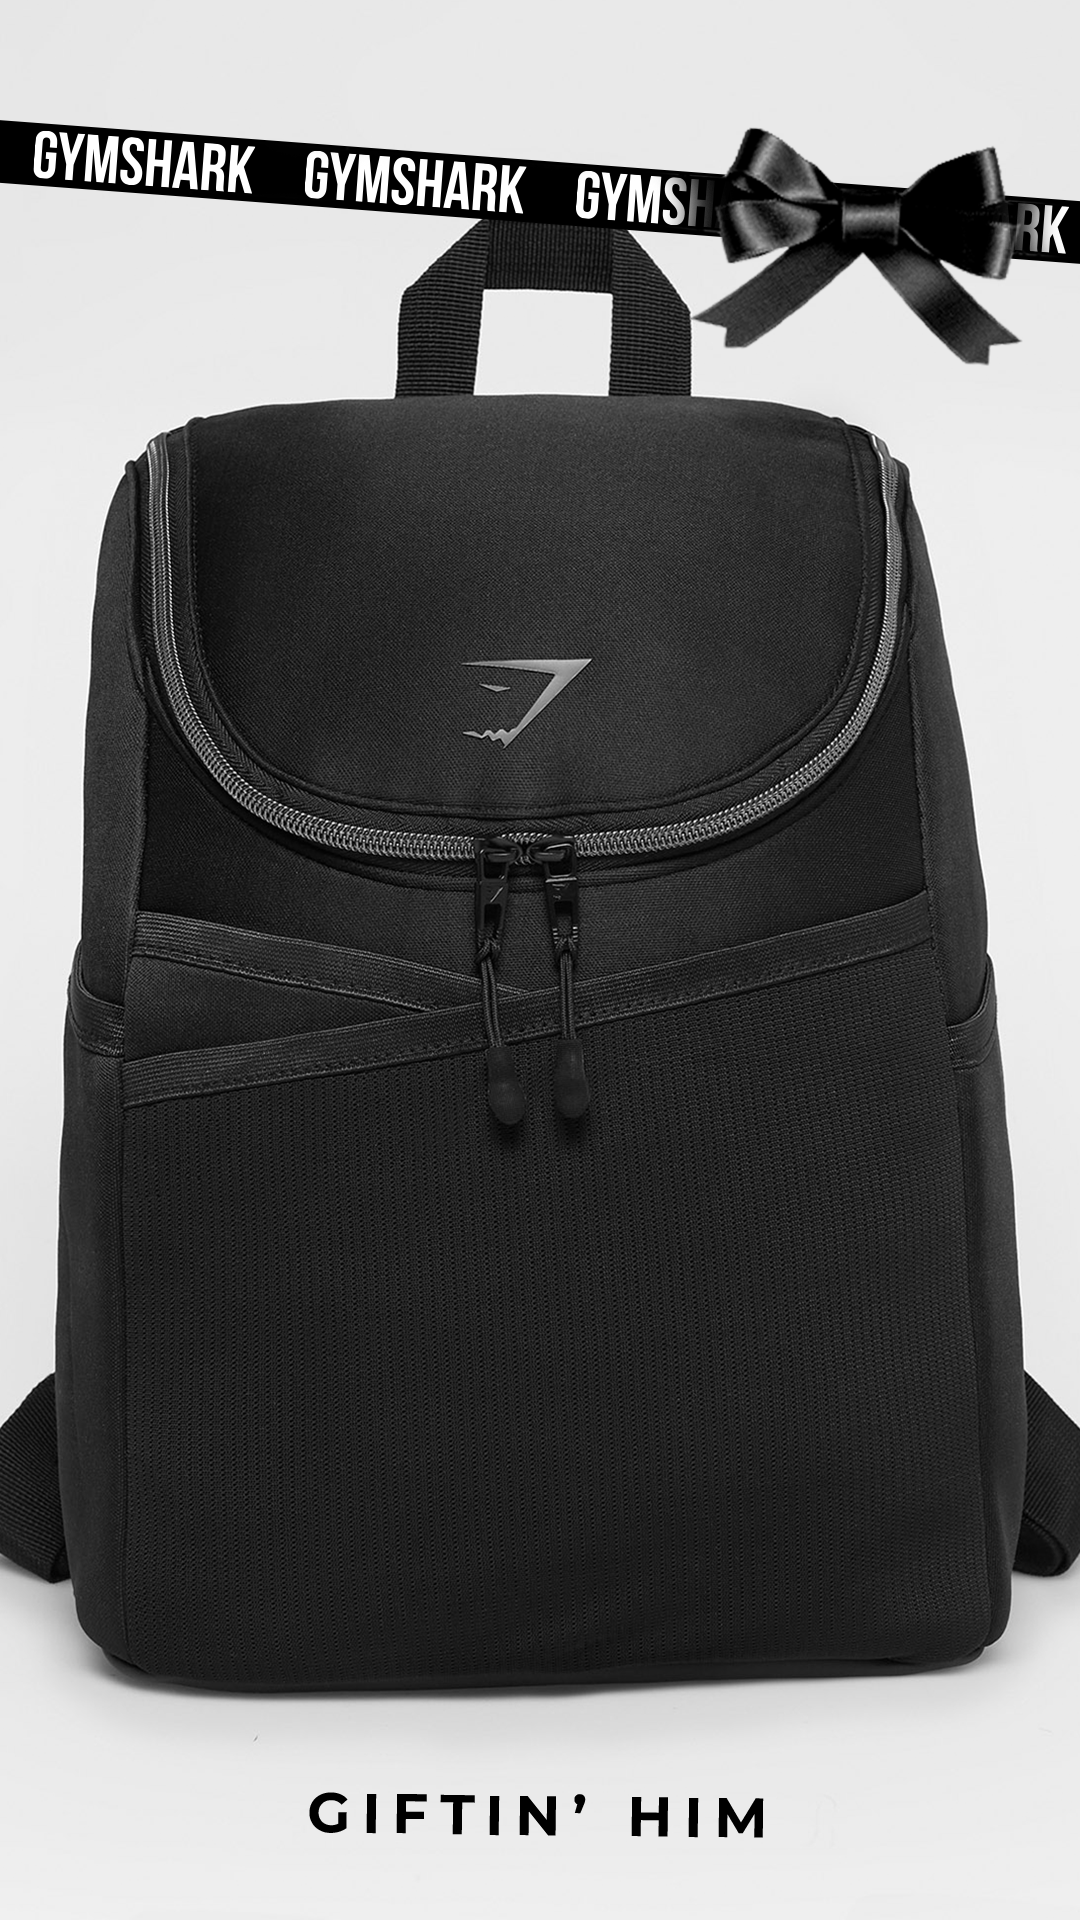 The Neoprene Lifestyle Backpack. Treat yourself to a new bag this ... 0f3b3cd5b5dad